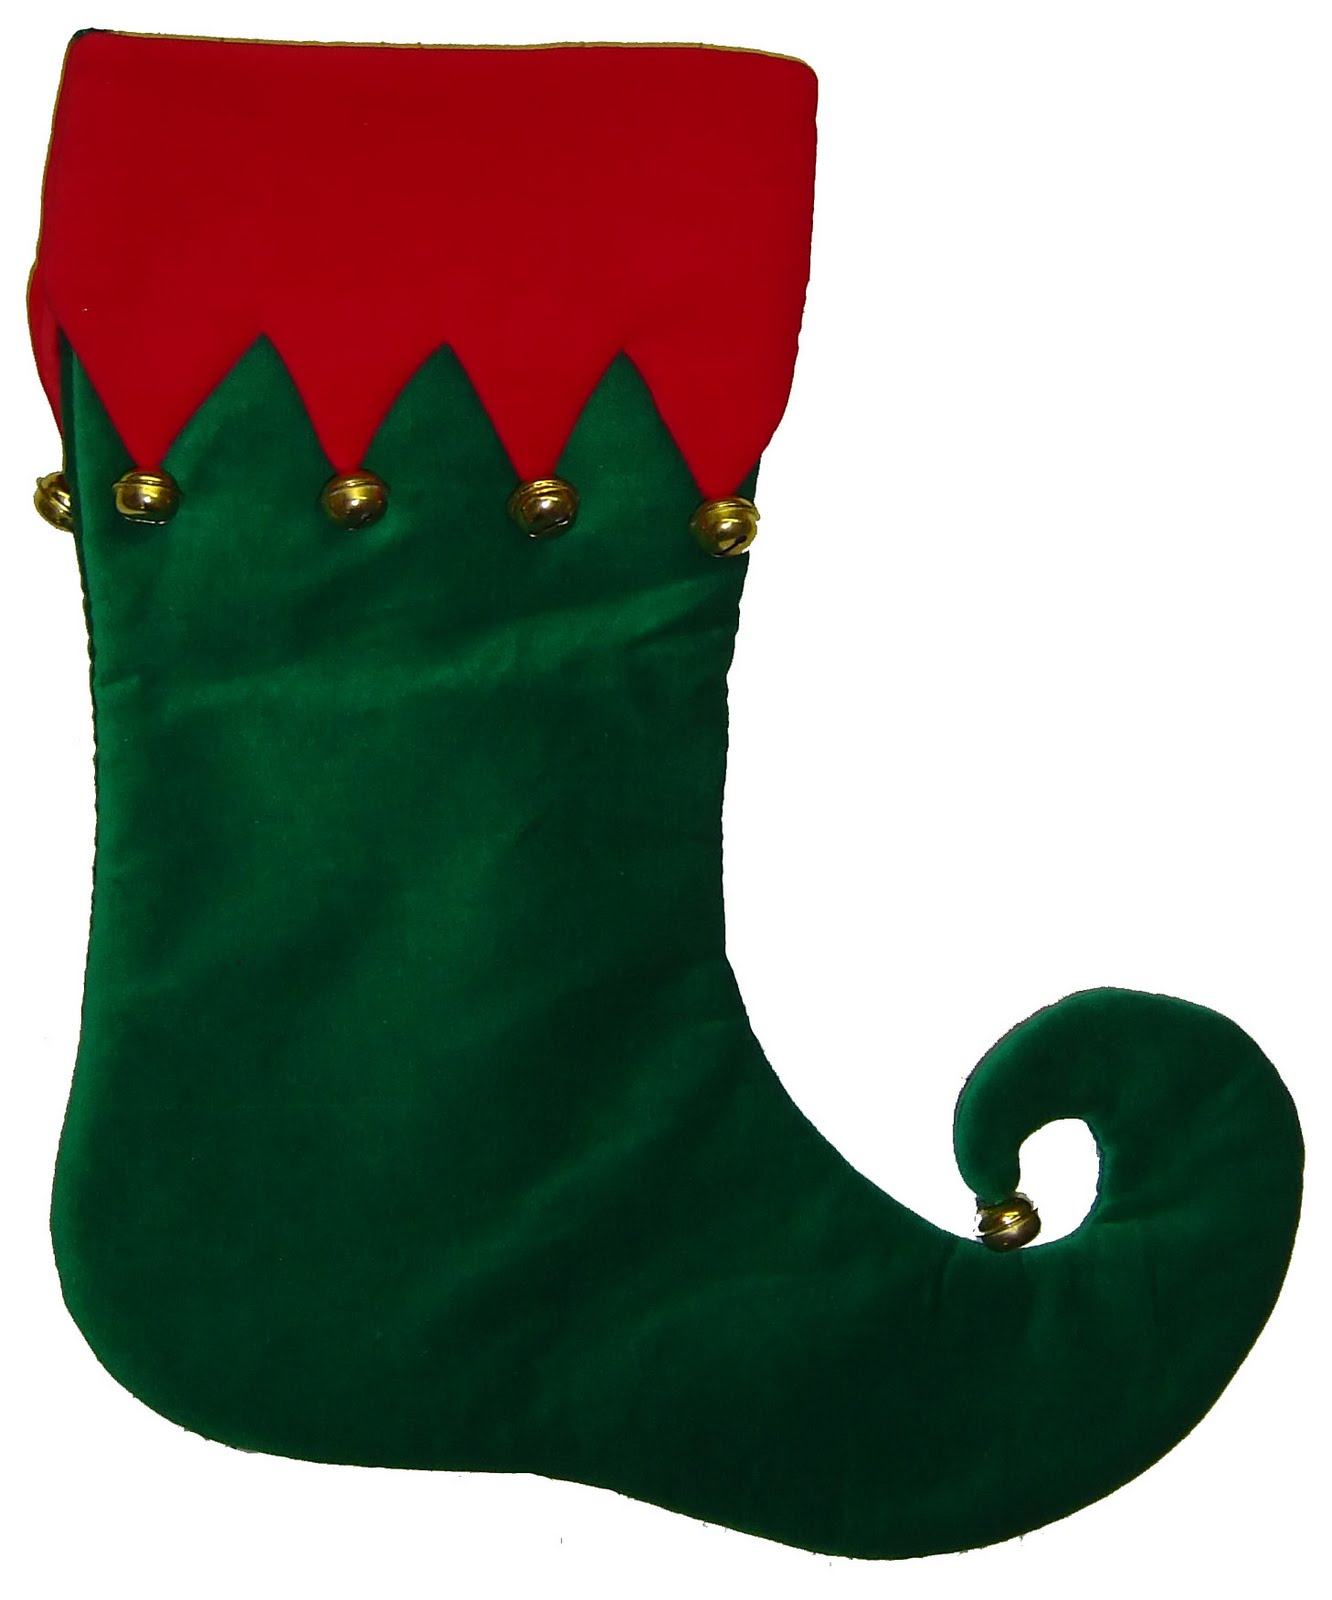 Elf clipart socks On Shelf Cliparts a Shoes